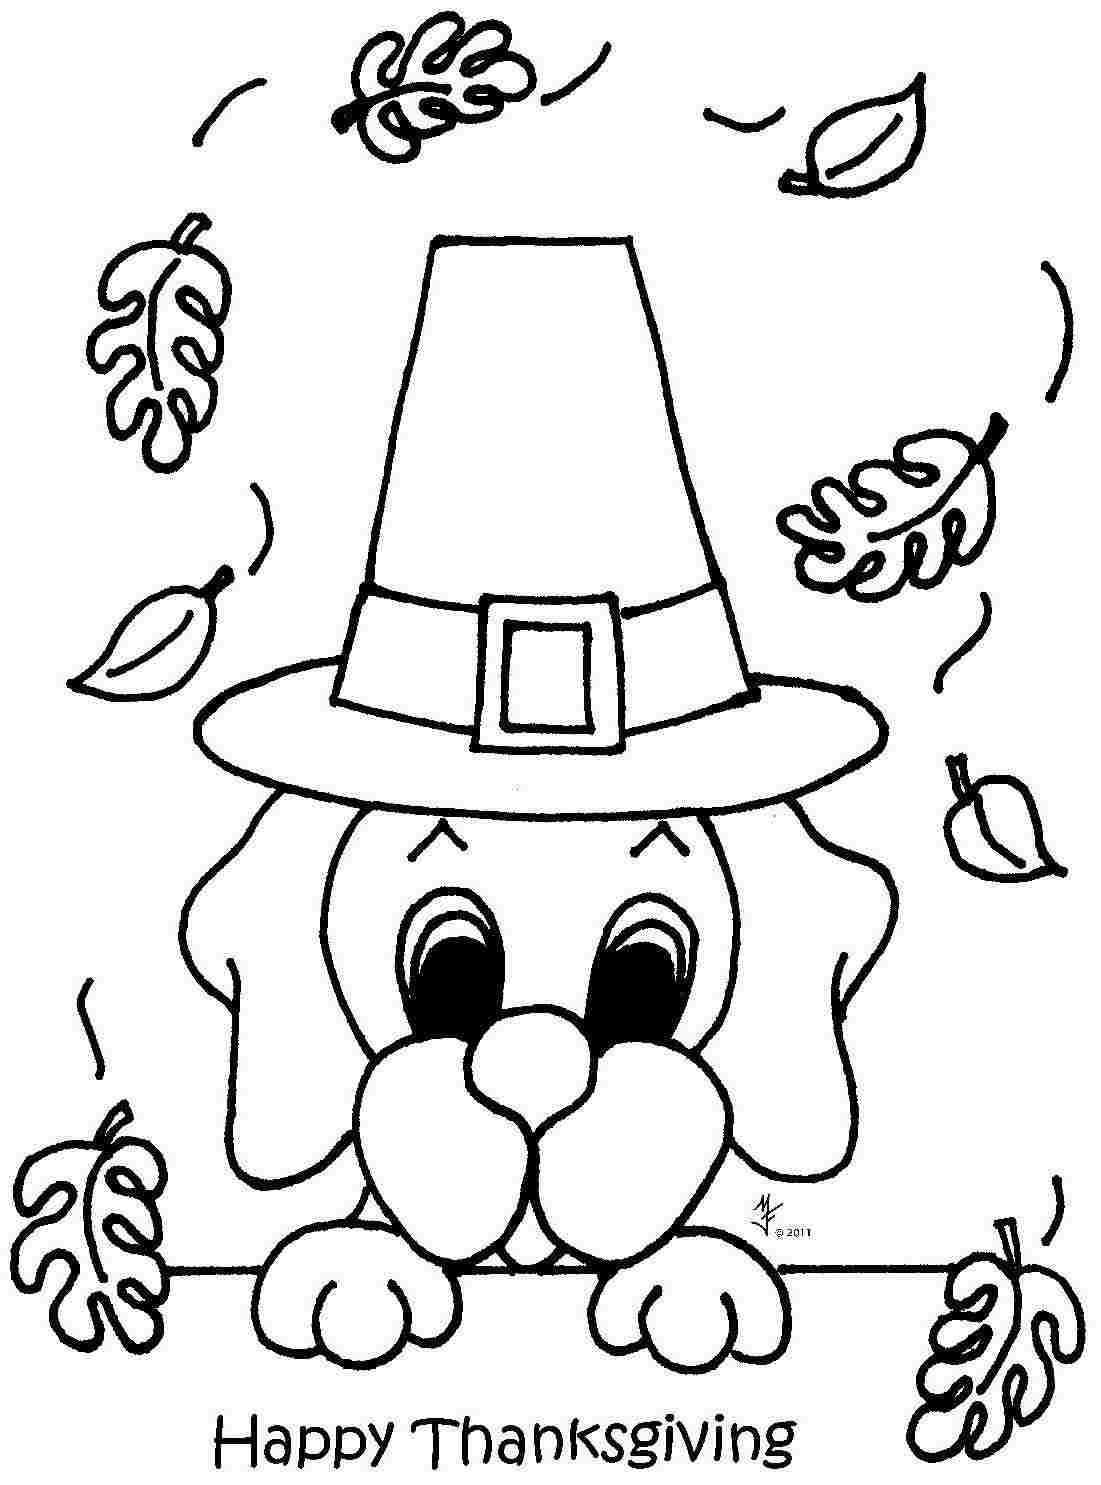 Thanksgiving Coloring Pages Disney 16 Get Court Dimensions Free Thanksgiving Coloring Pages Thanksgiving Coloring Sheets Thanksgiving Coloring Pages